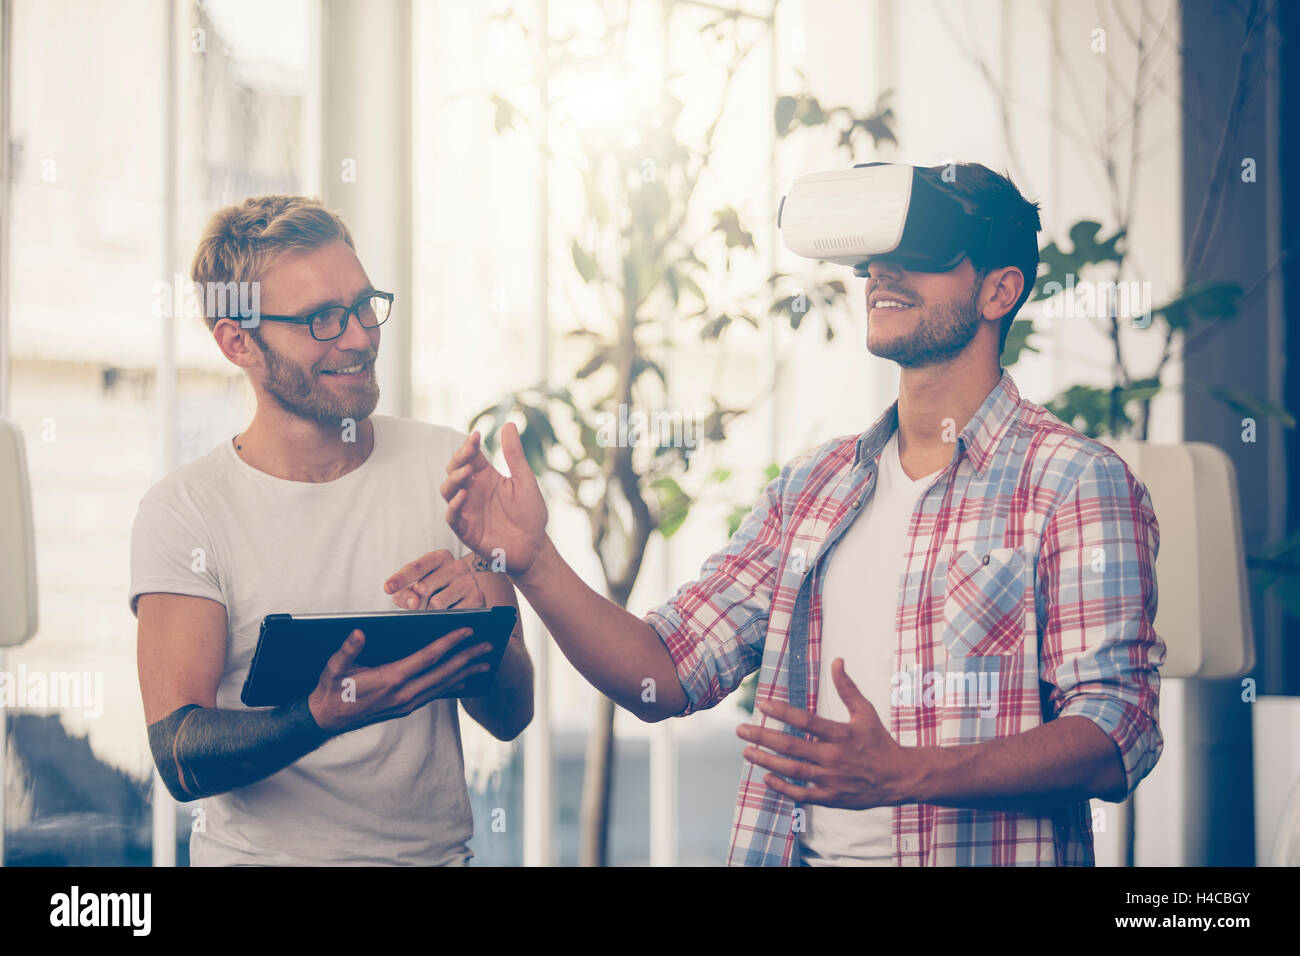 Entrepreneurs testing virtual reality technology with colleague in office. - Stock Image